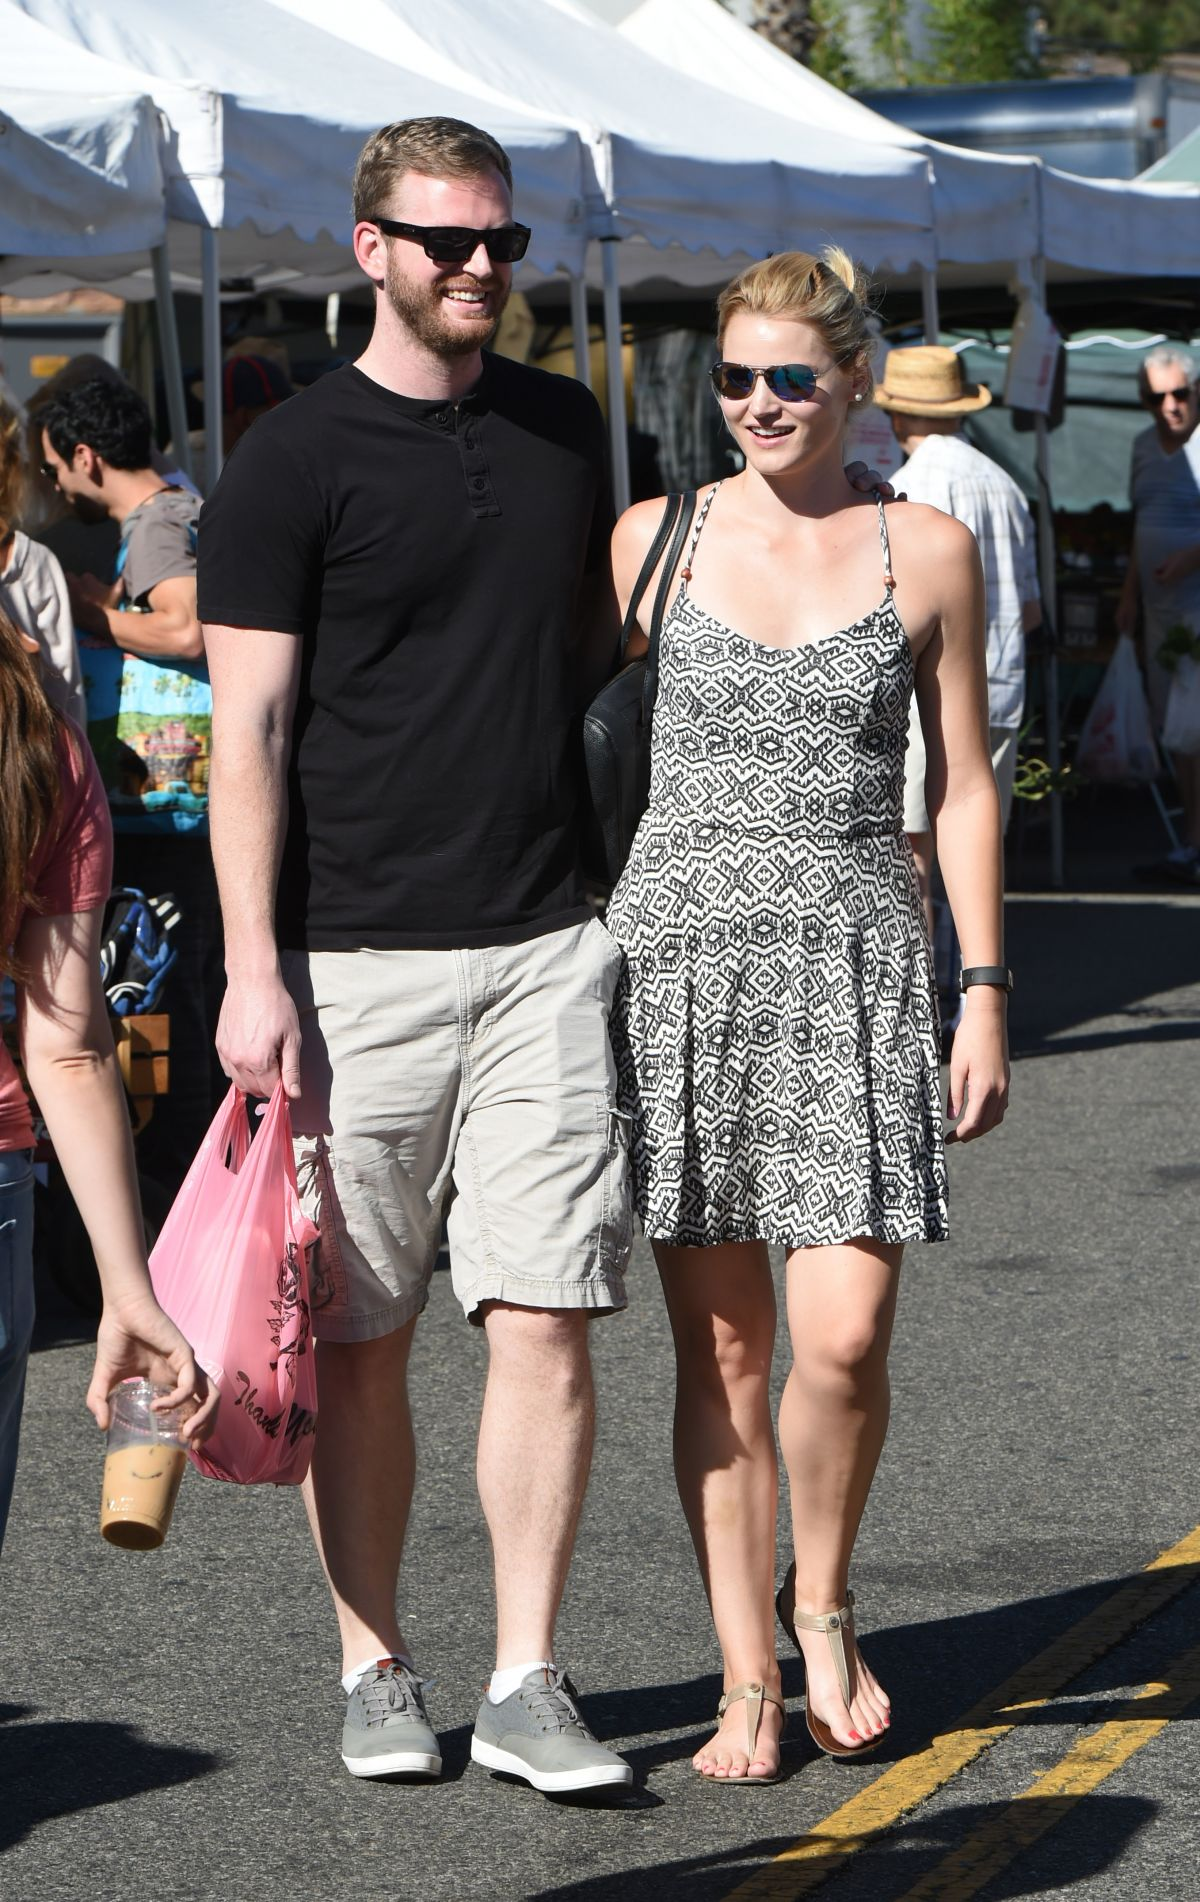 Laura Harman Goes to the Farmers Market with her boyfriend in Los Angeles